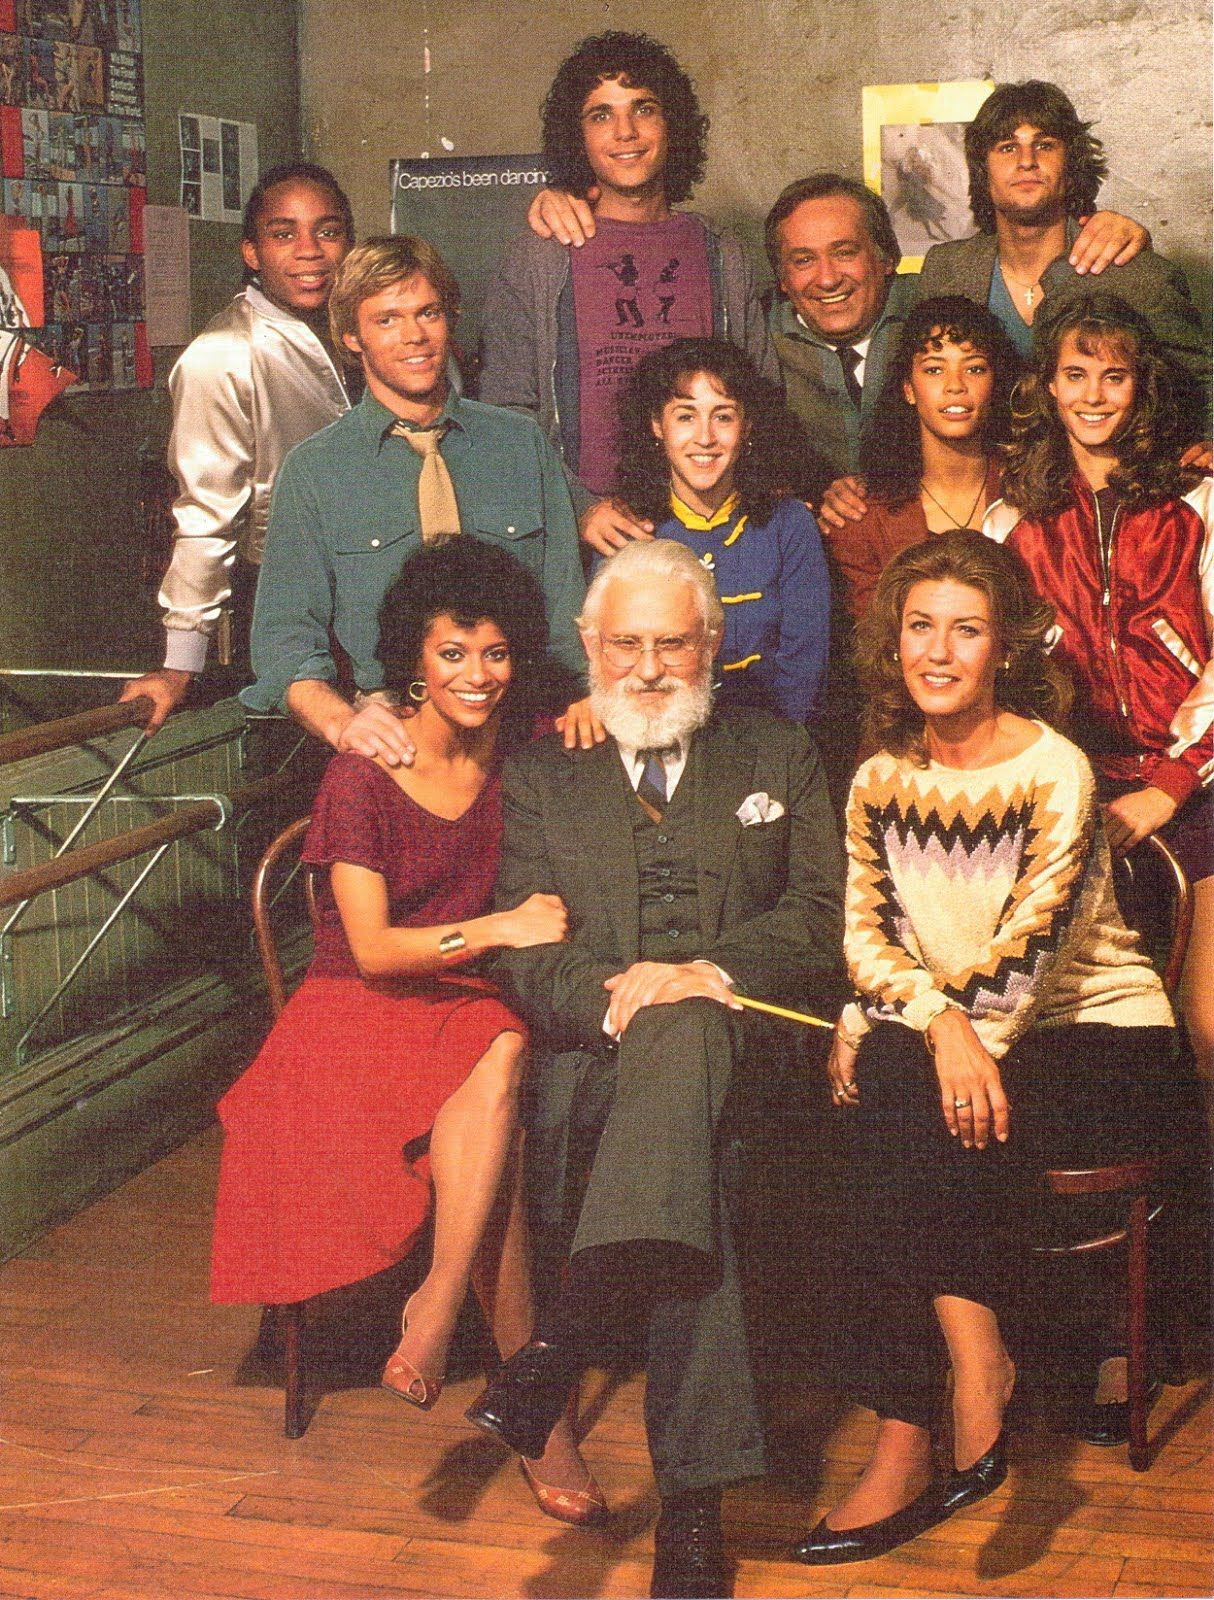 Cast Tv Channels Fame Cast Kids From Fame Tv Shows Past Tv Shows Tv